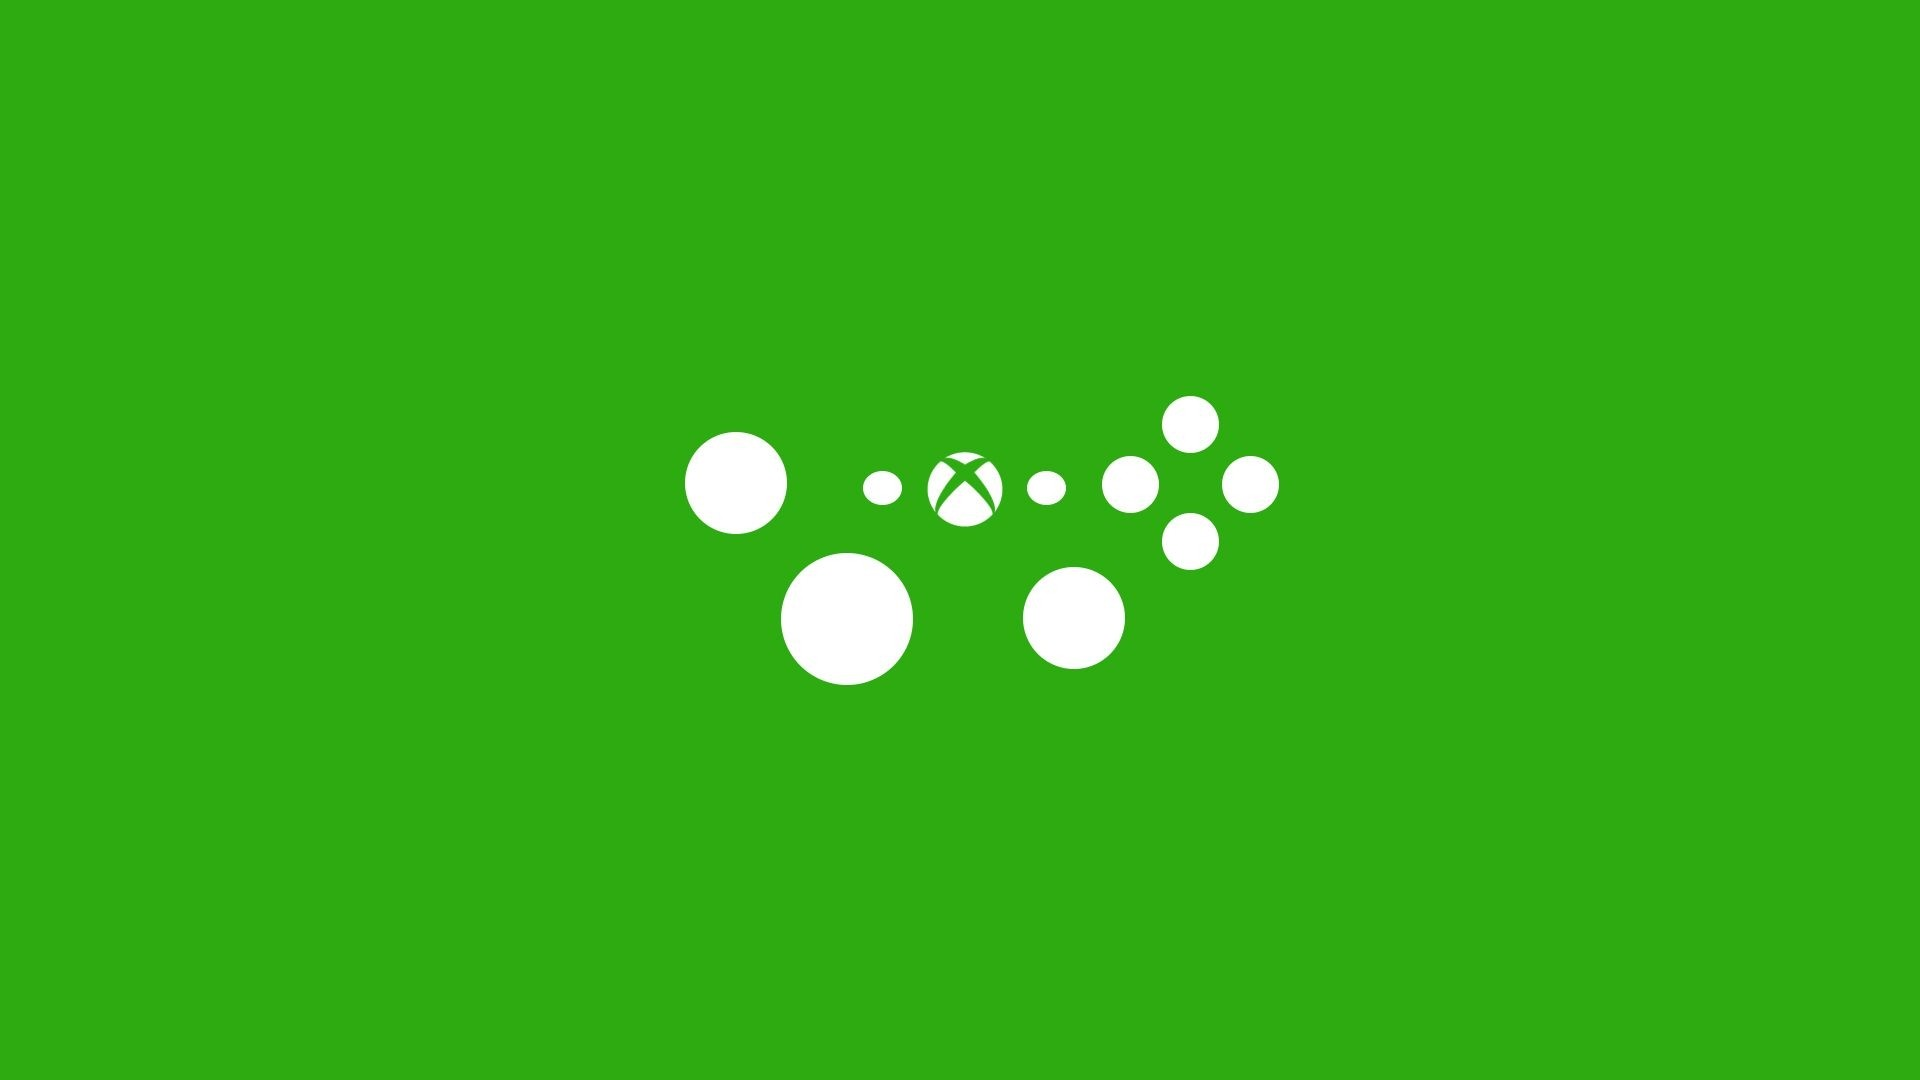 Xbox One Wallpaper Free